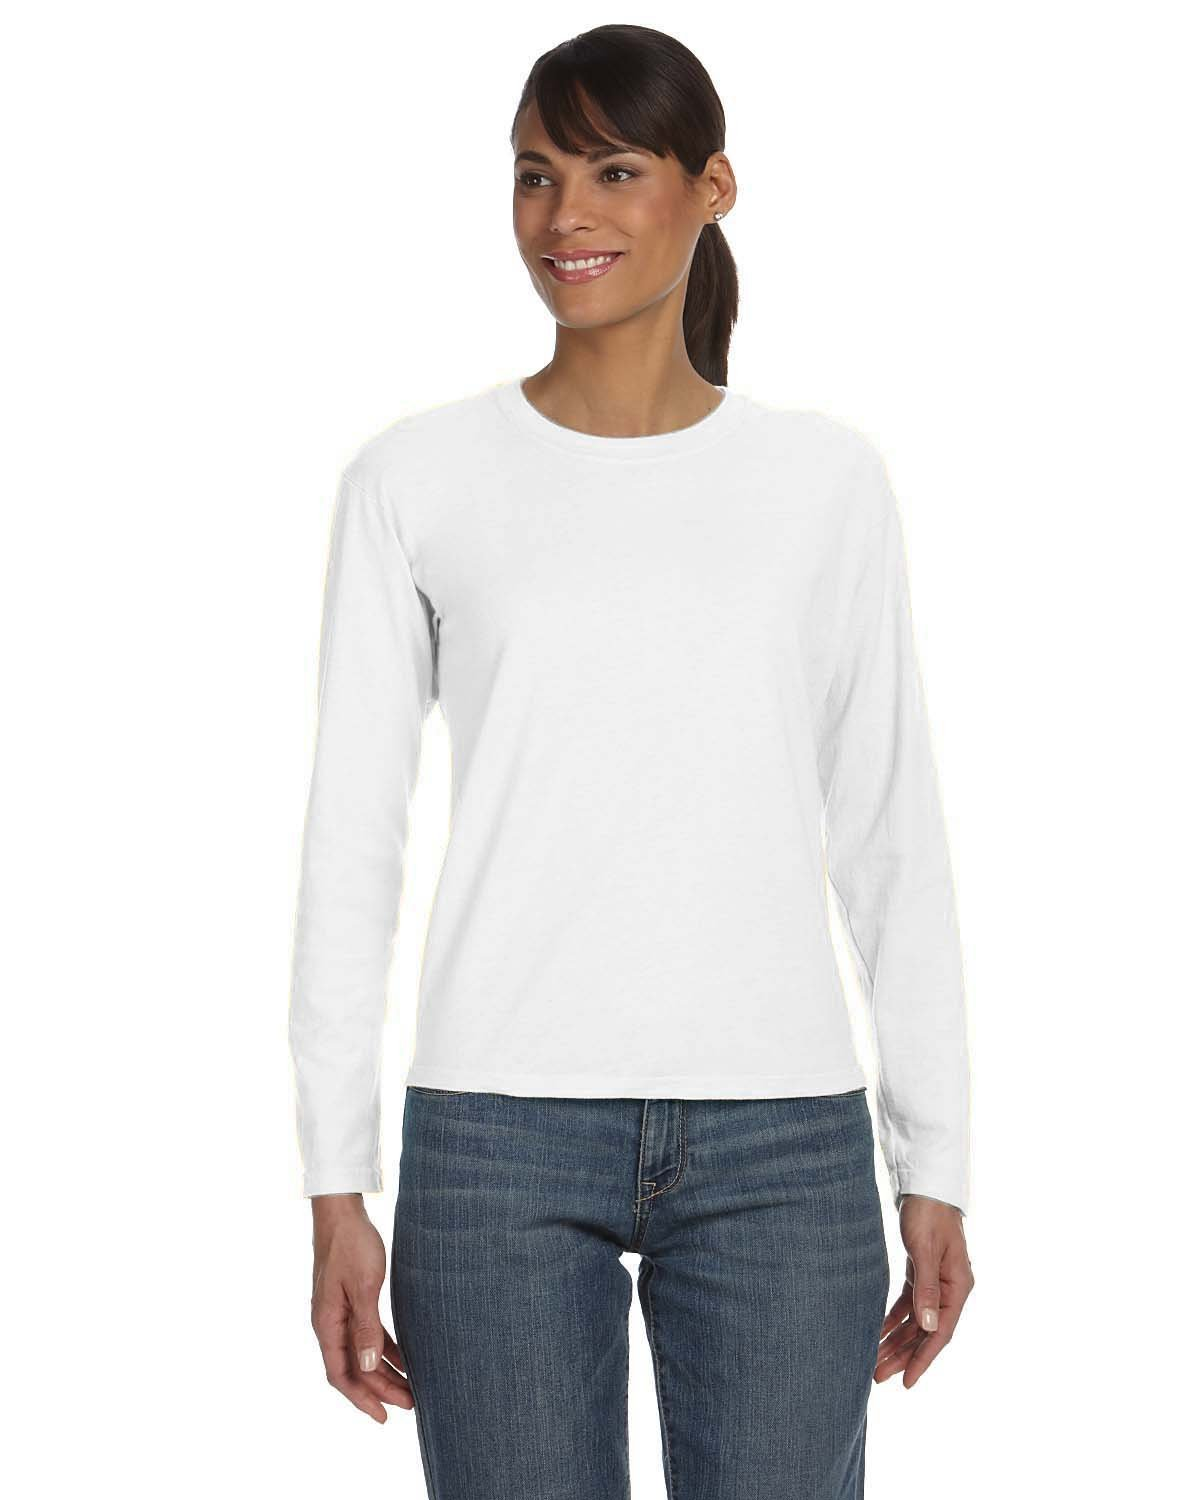 Comfort Colors Ladies' Midweight RS Long-Sleeve T-Shirt WHITE